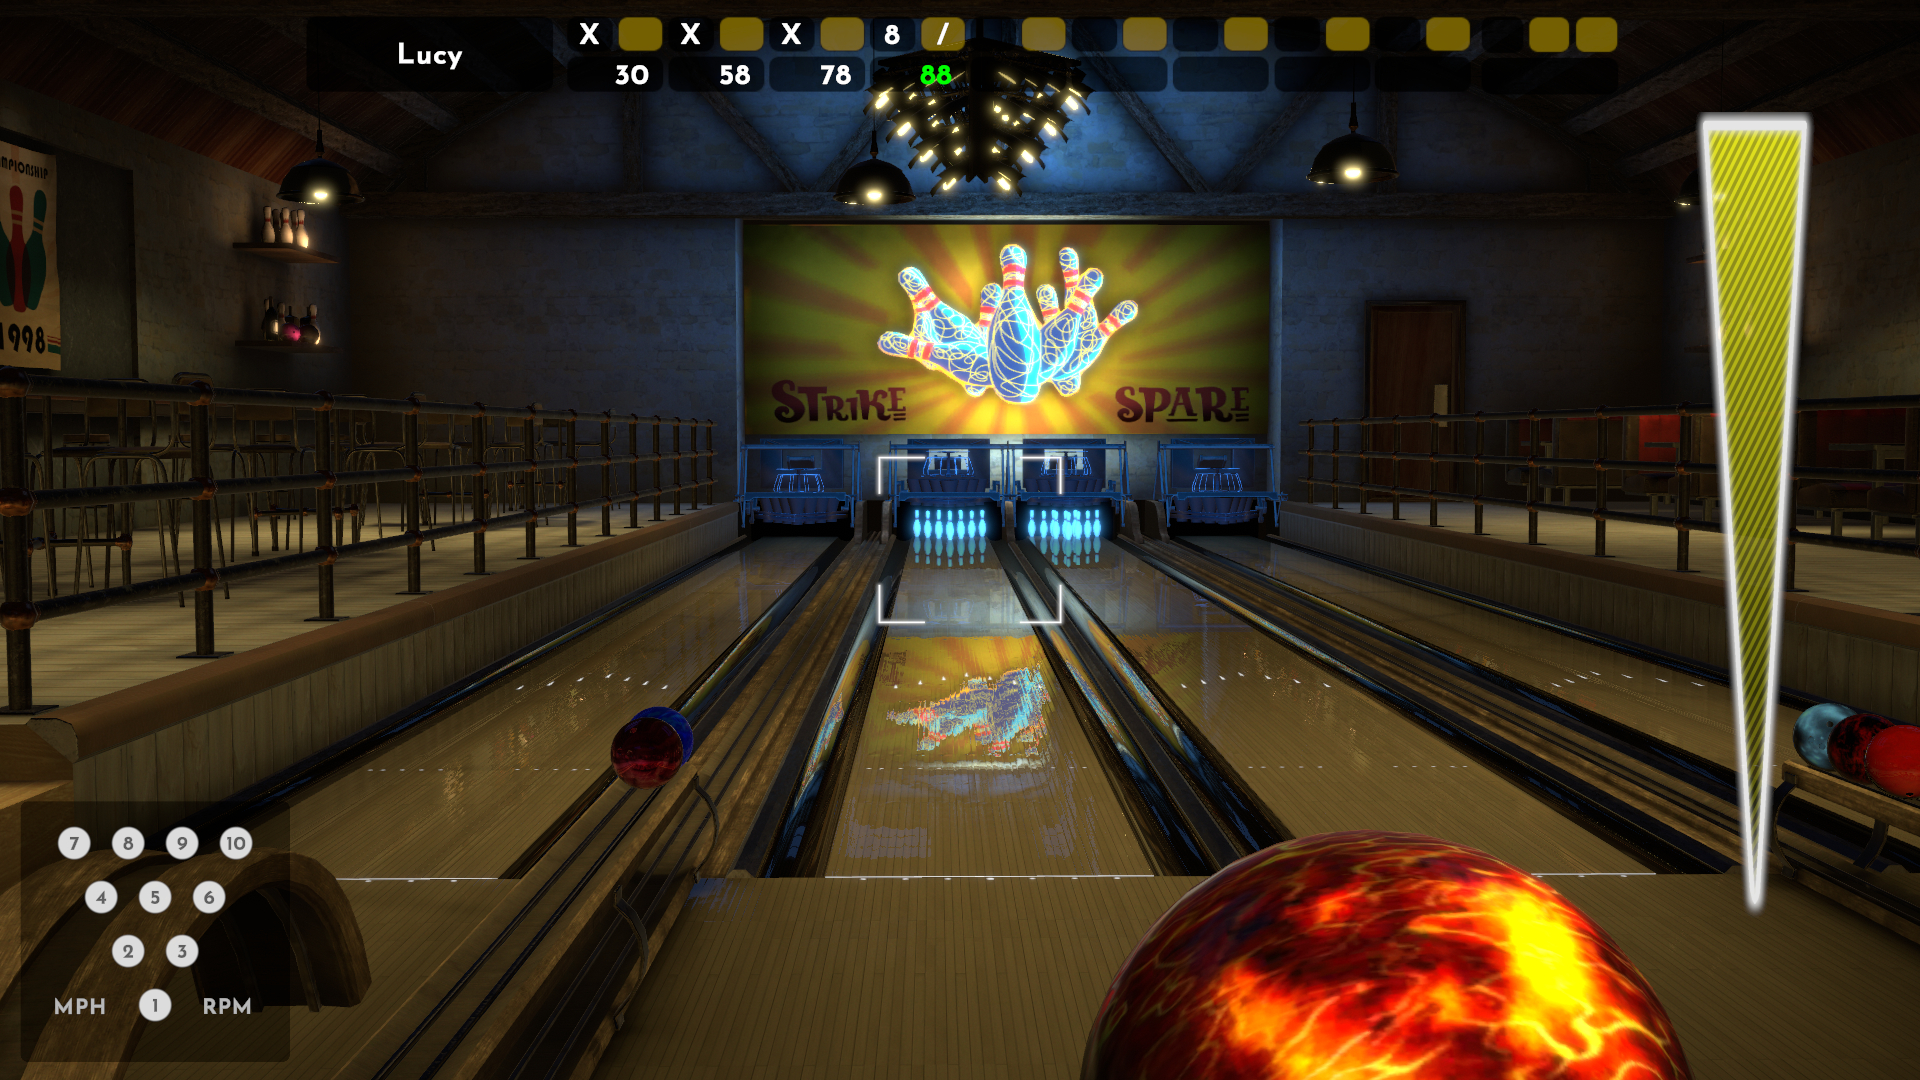 Find the best laptop for Premium Bowling